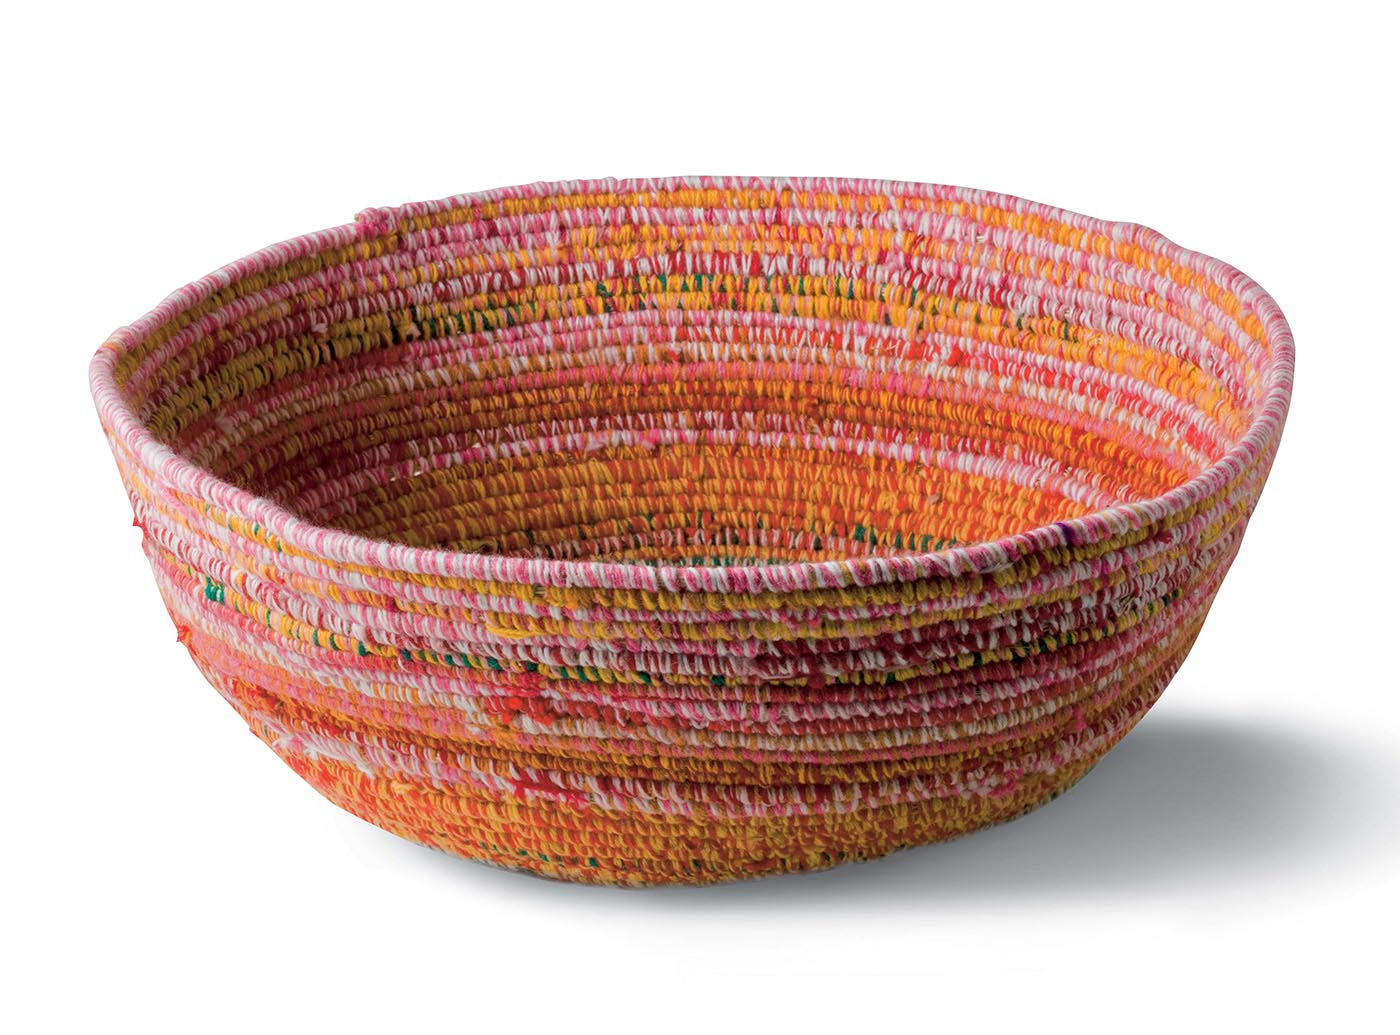 Basket by Ngamaru Bidu, Martumili Artists, 2009. Plant fibre and yarn. - click to view larger image